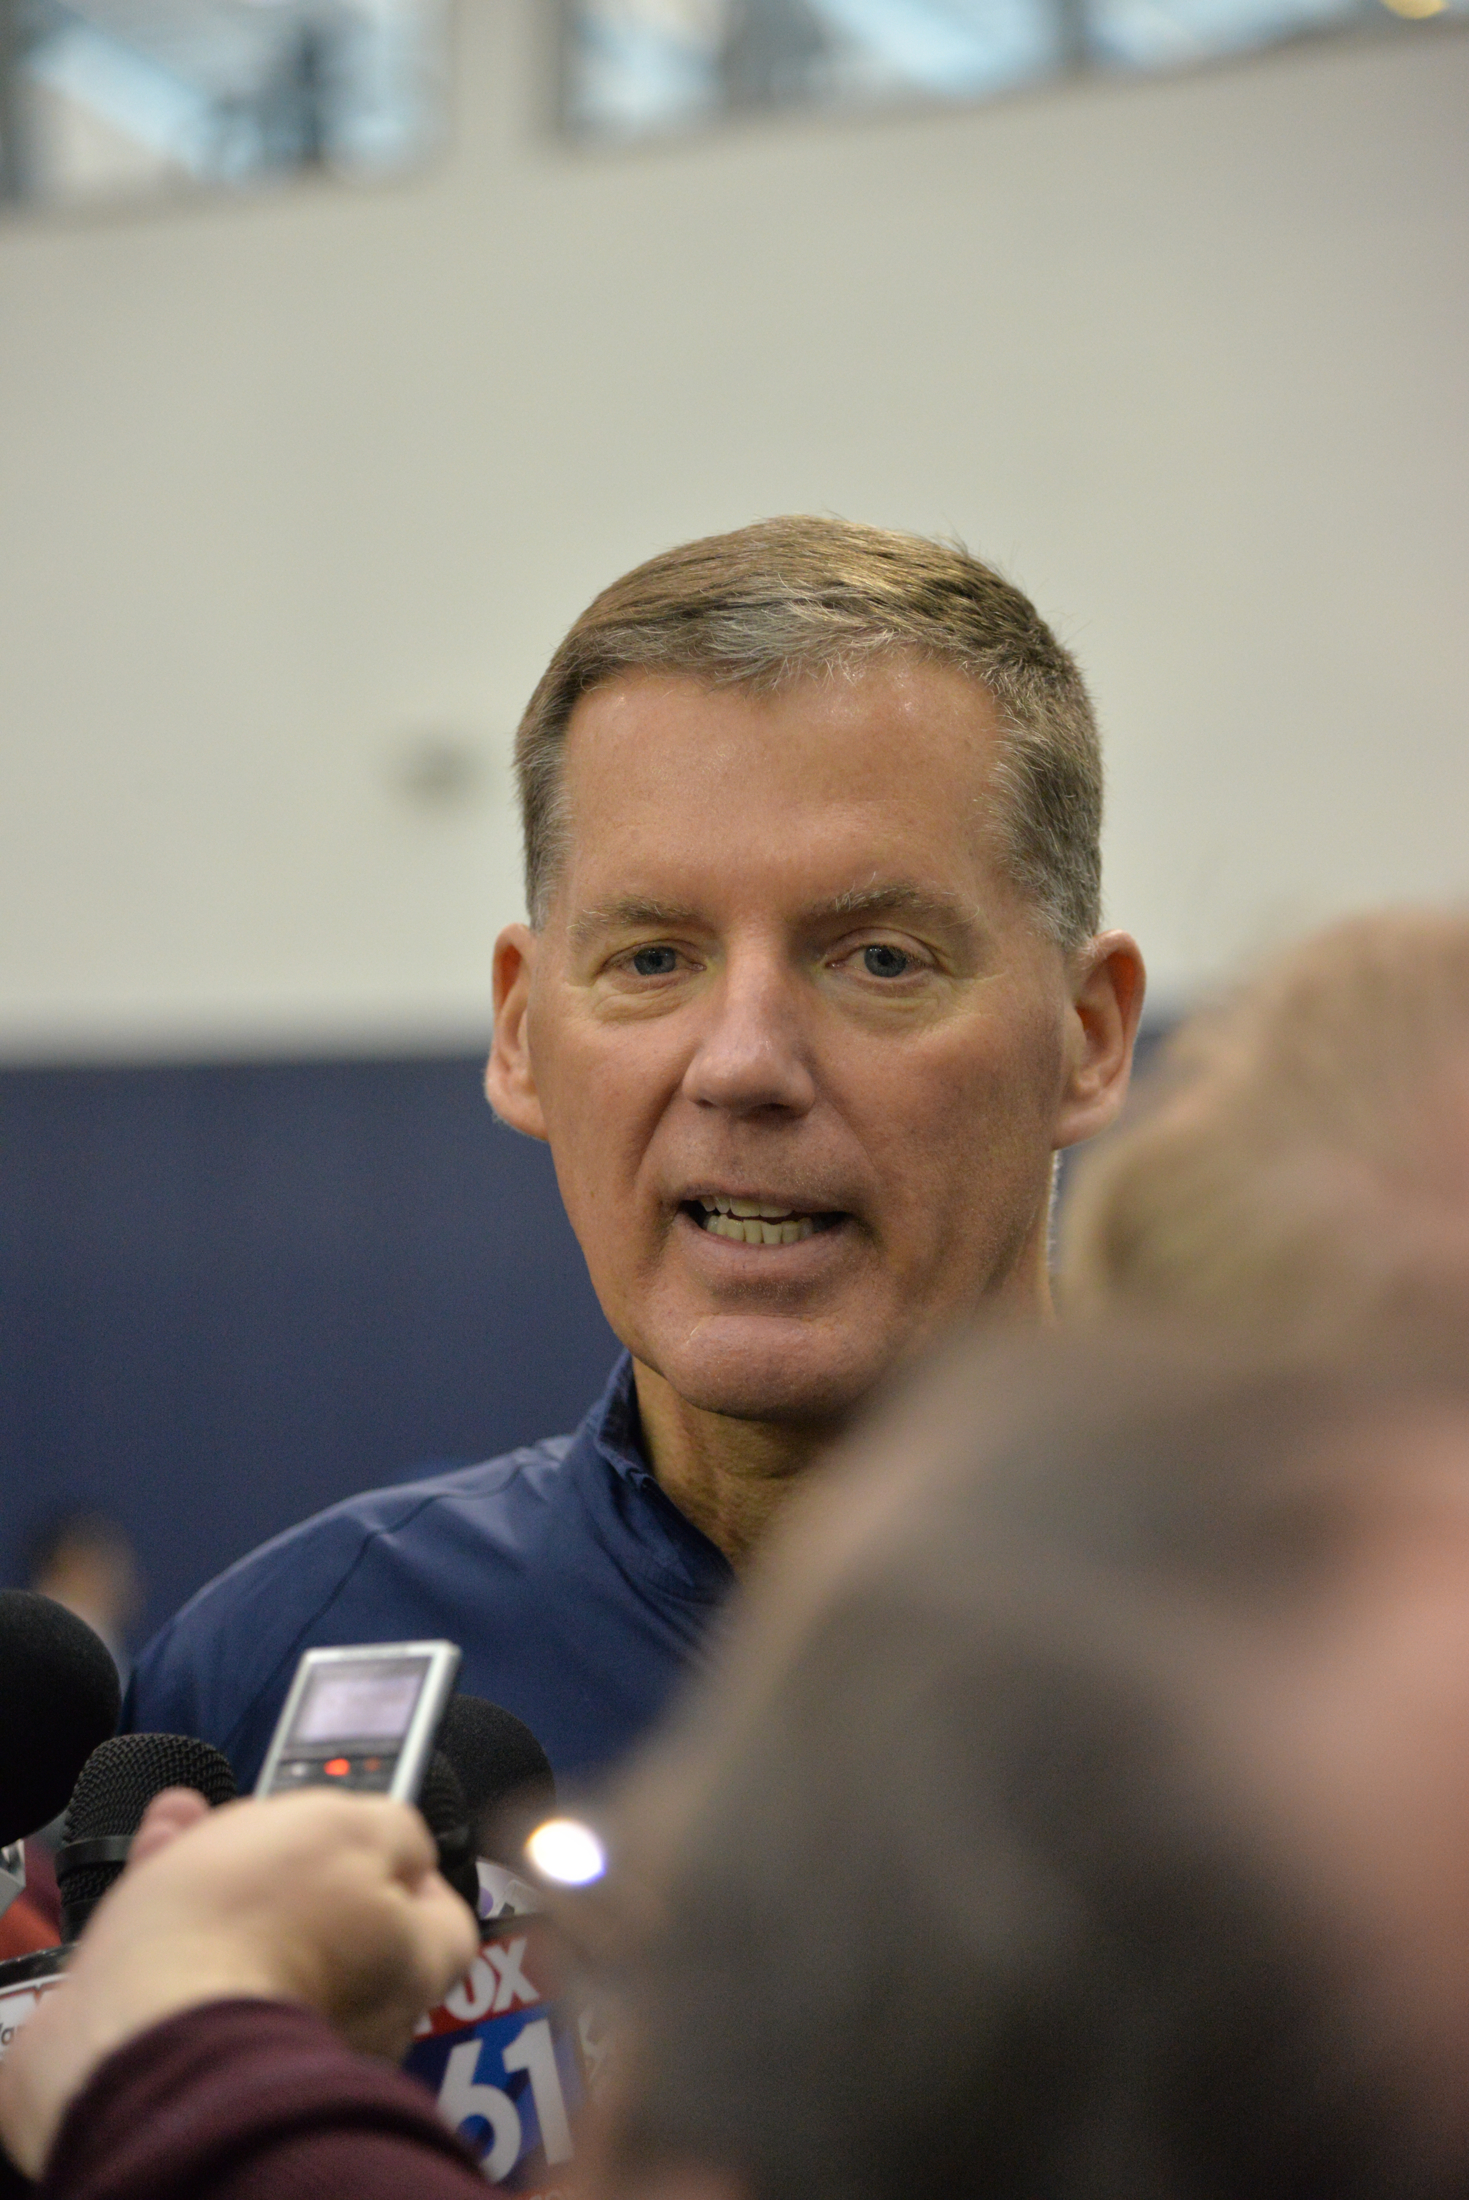 The spring game will be the first chance for fans to see the work that head coach Randy Edsall has done in the past few months after returning to the program. (Amar Batra/The Daily Campus)